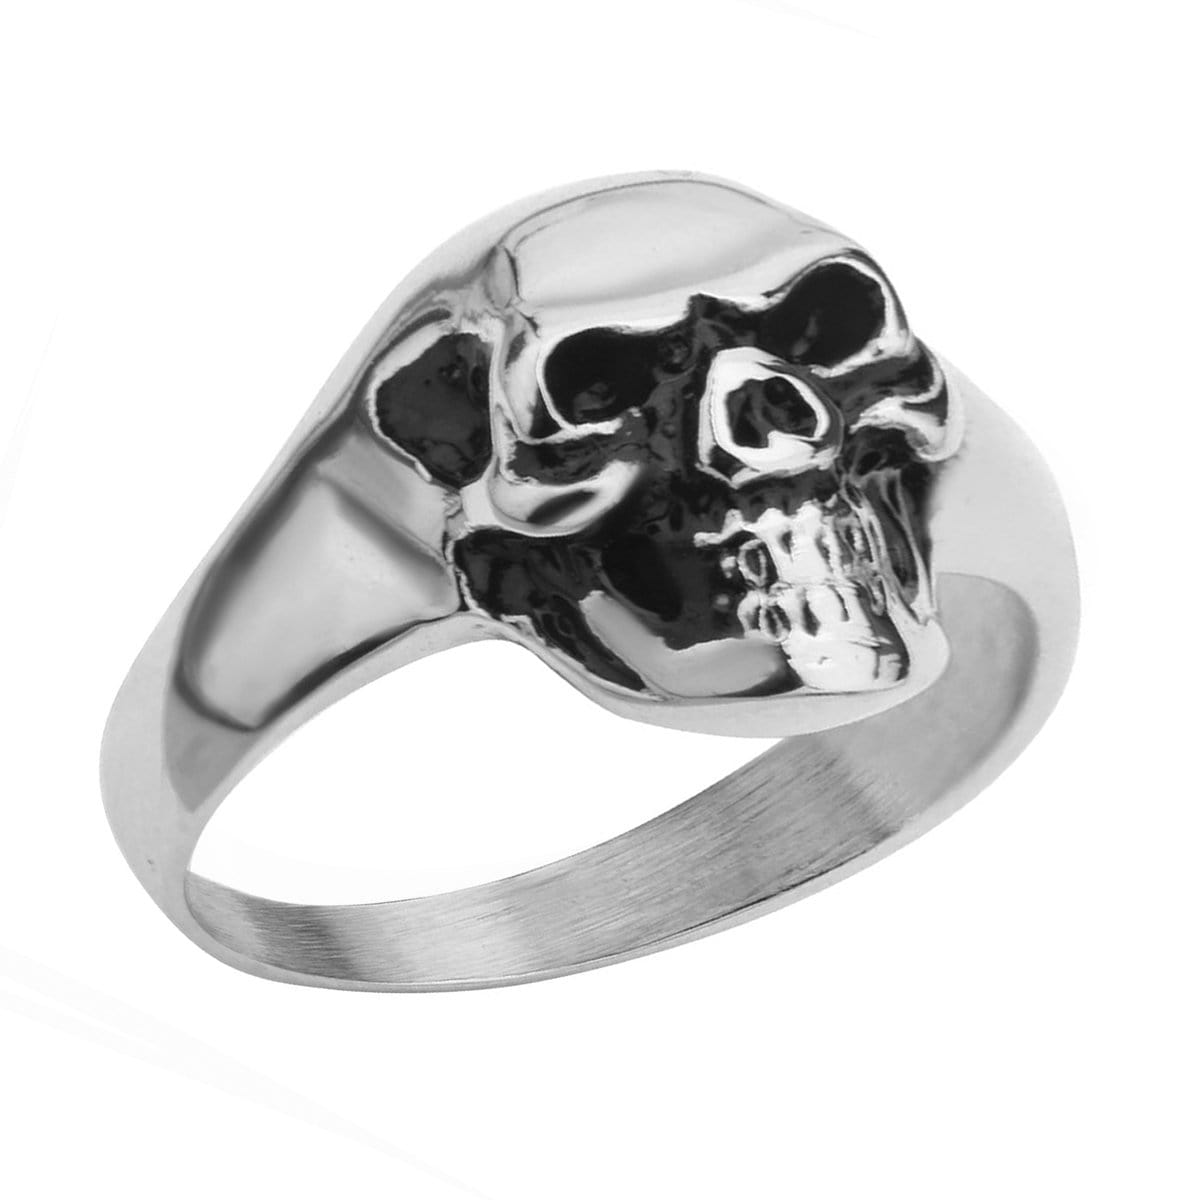 Silver Stainless Steel Evil Laughing Skull Ring